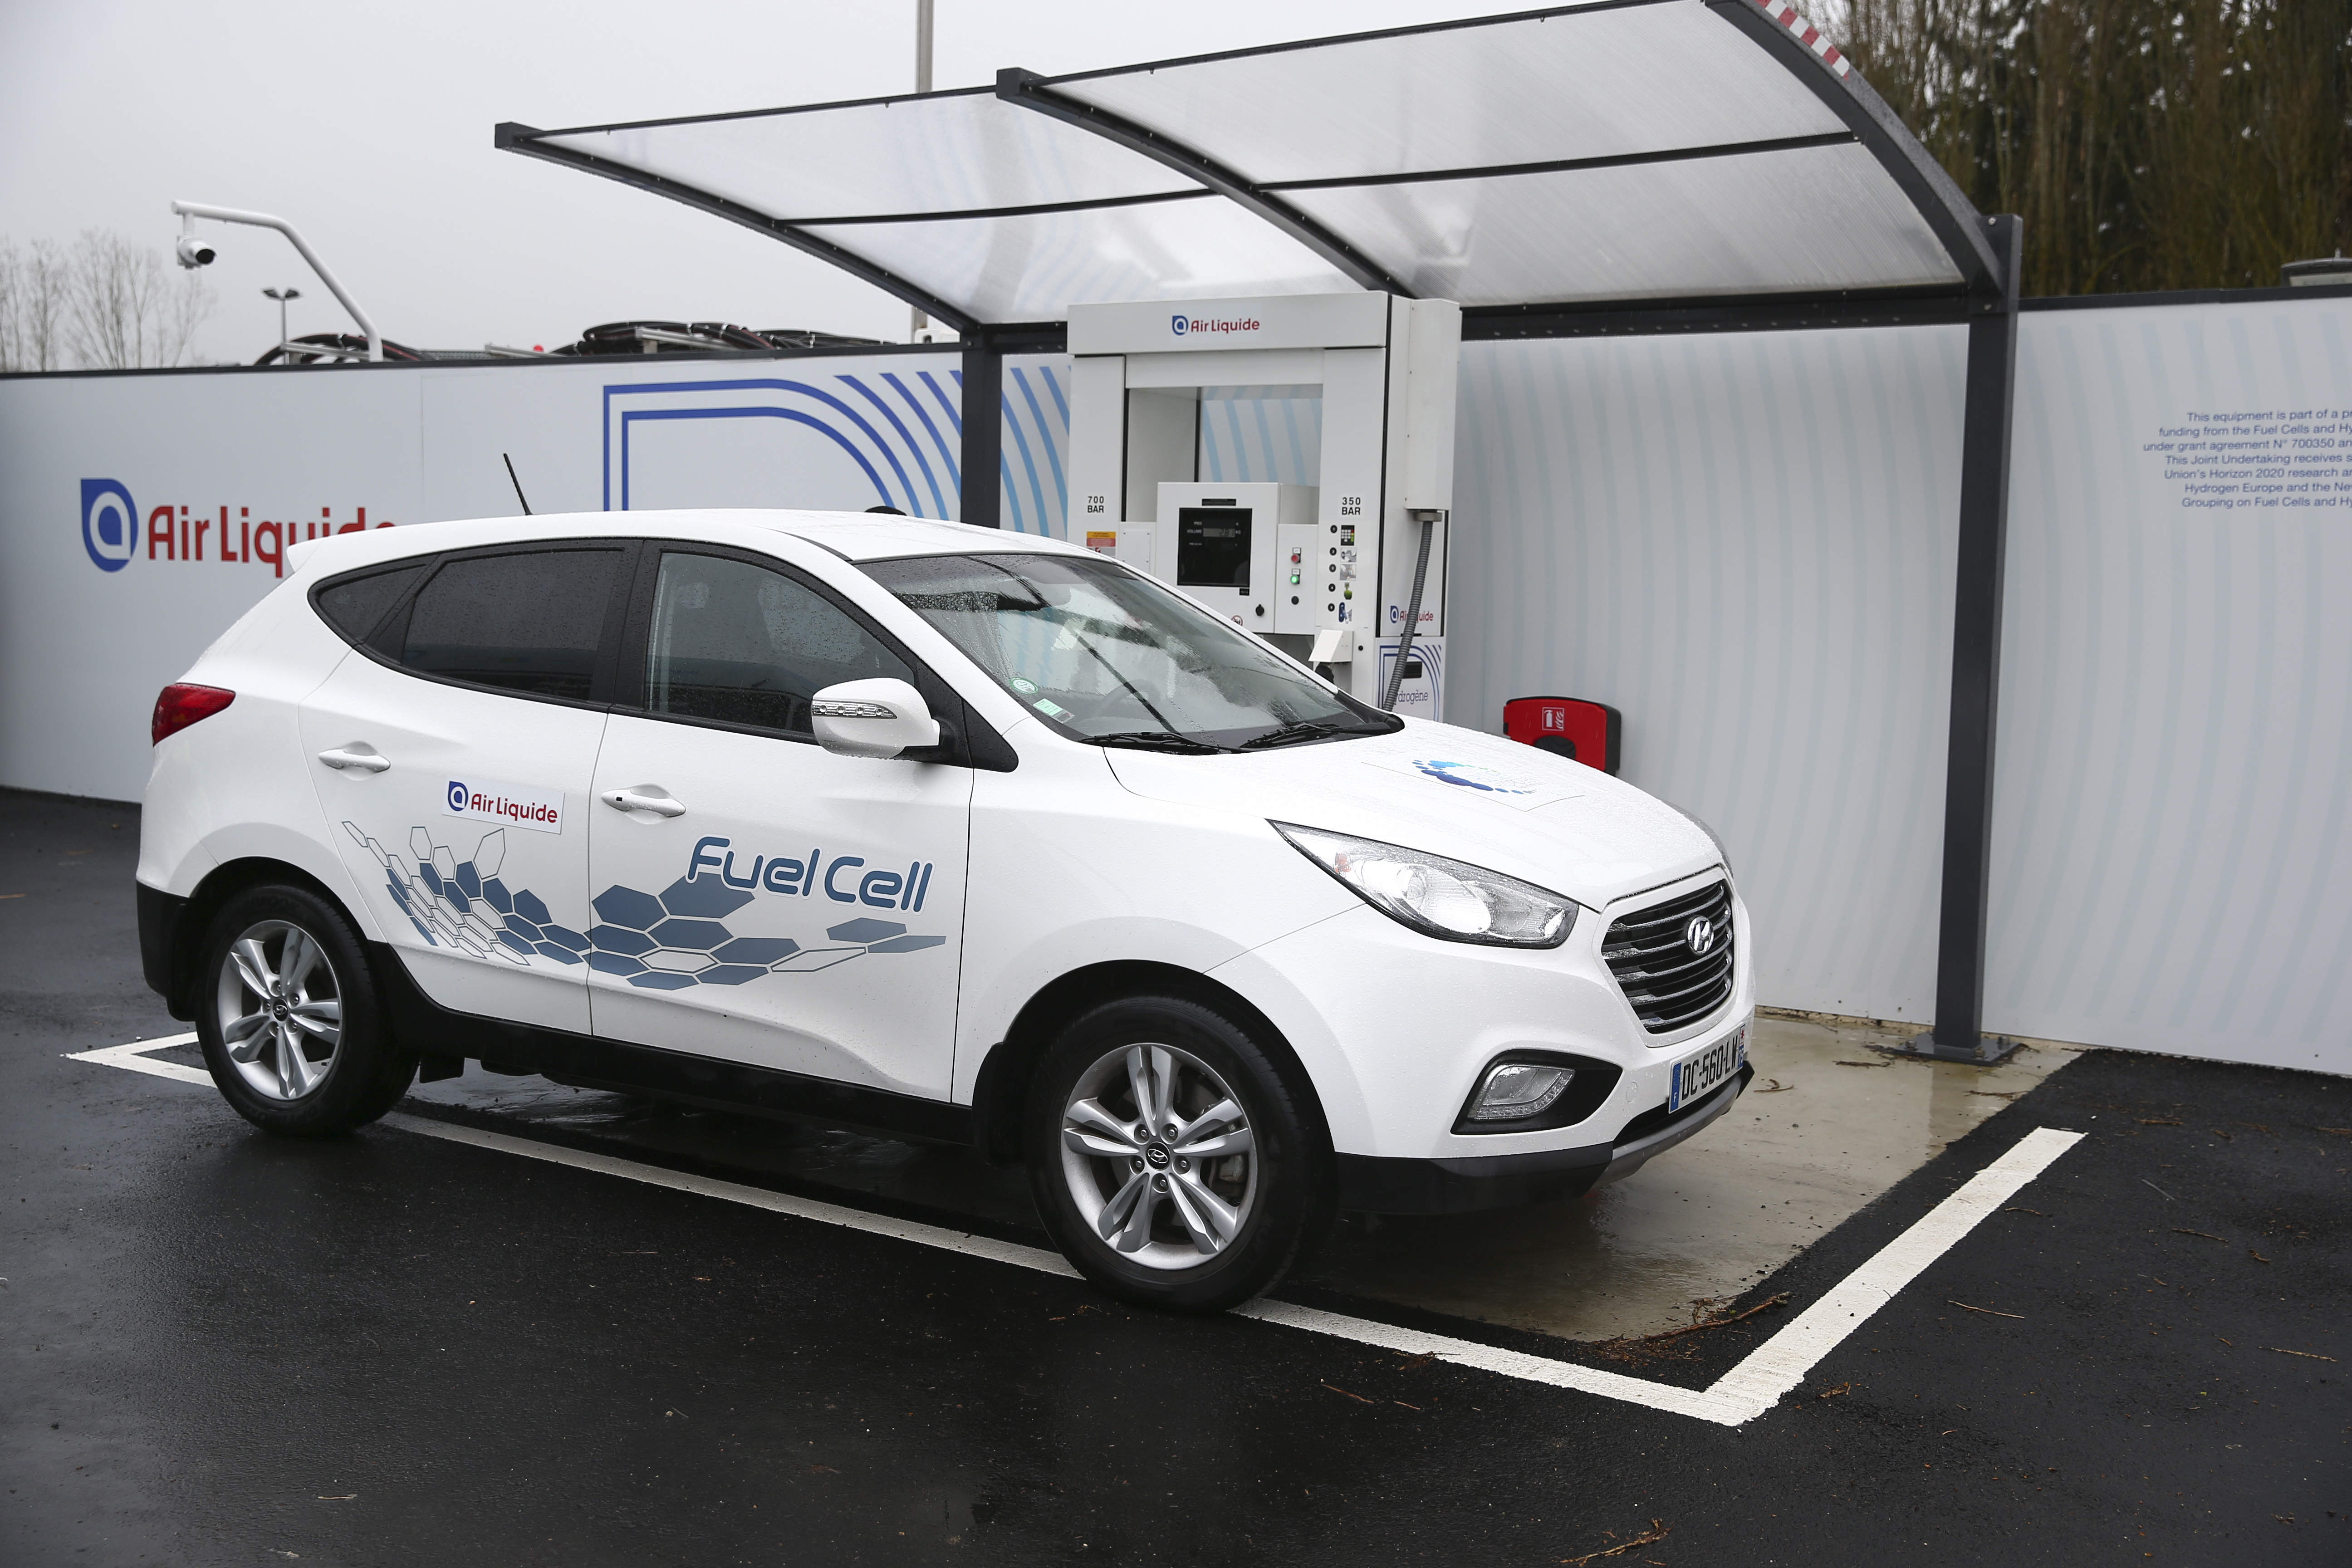 Hydrogen-fuelled cars